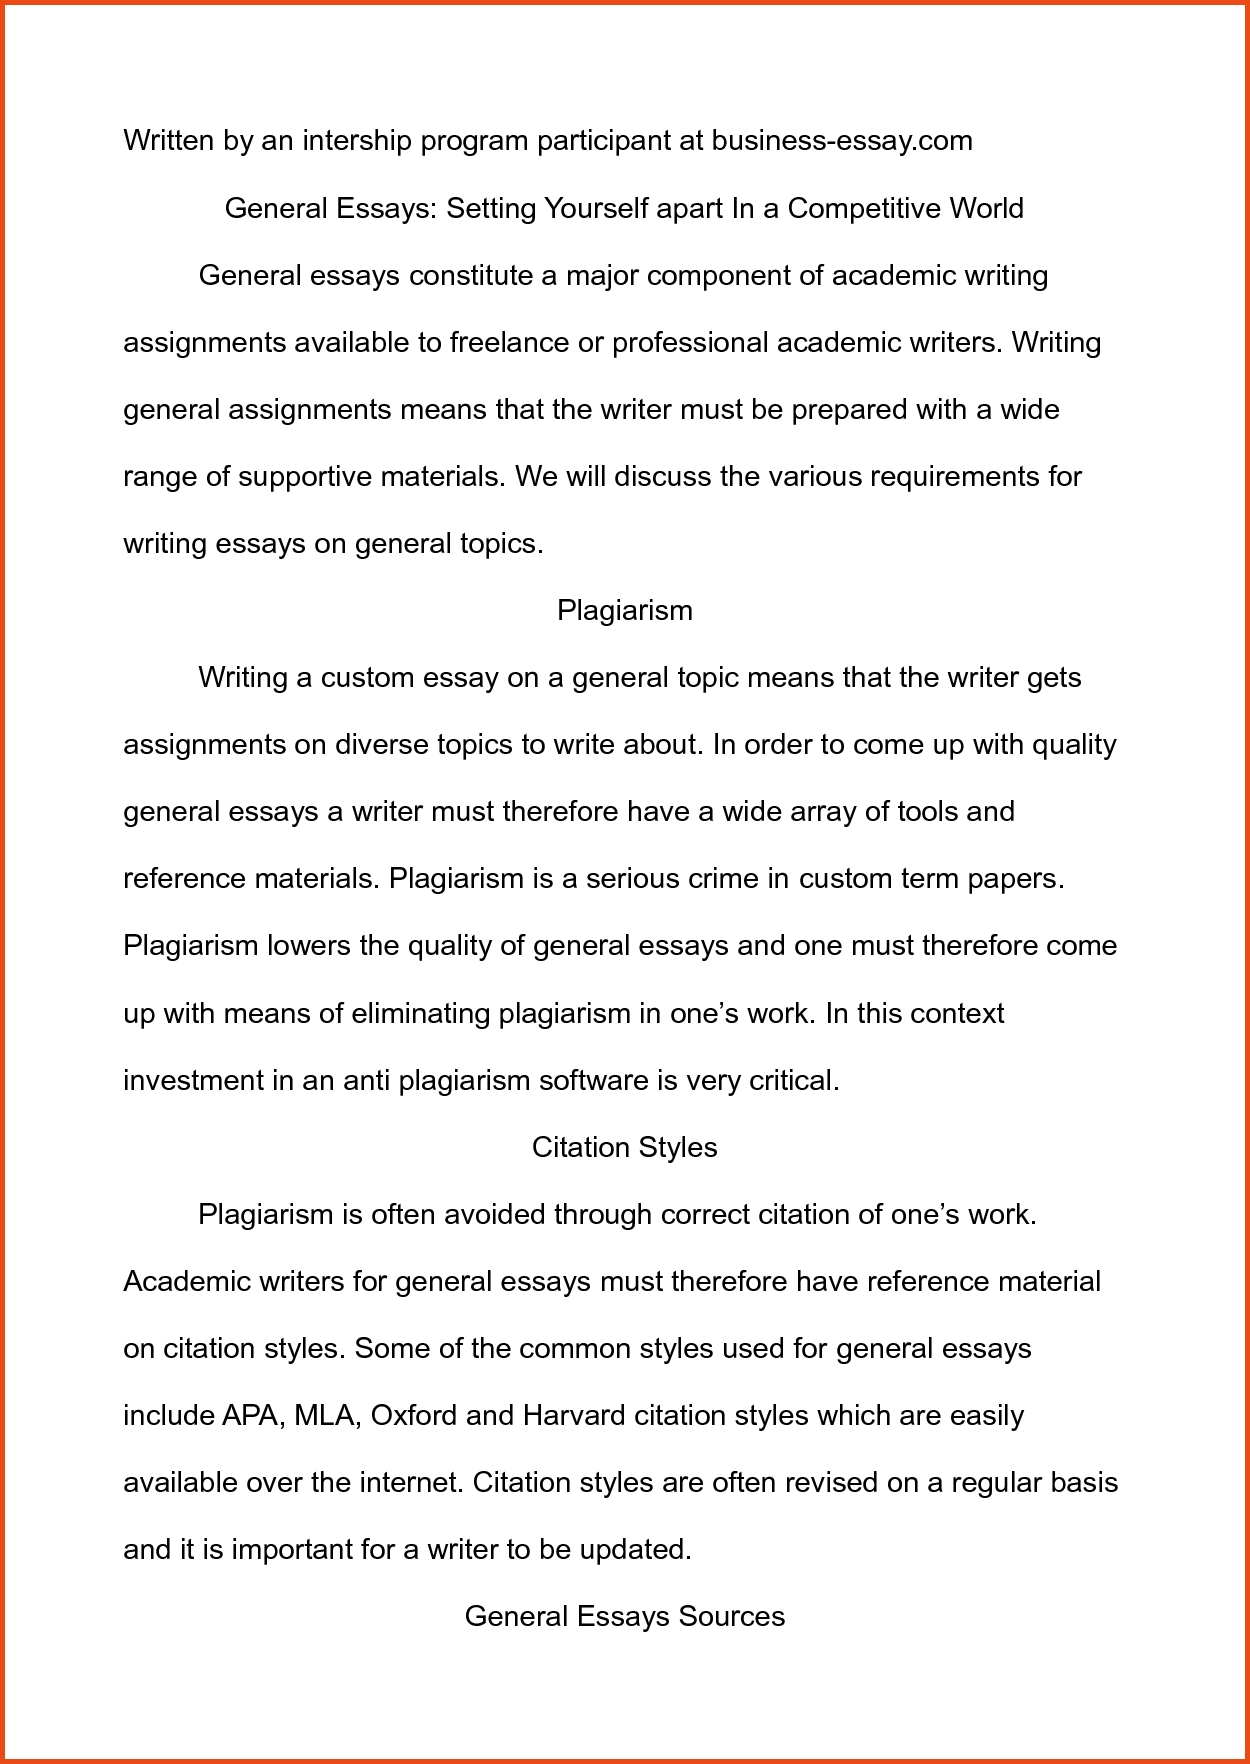 006 Essay Describing Yourself An Historical Architecture Cv On Sample Myself Writing Introducing Essays About Introduce Intended For College Exam Pdf In French Hindi Example Unusual Kids Students Full